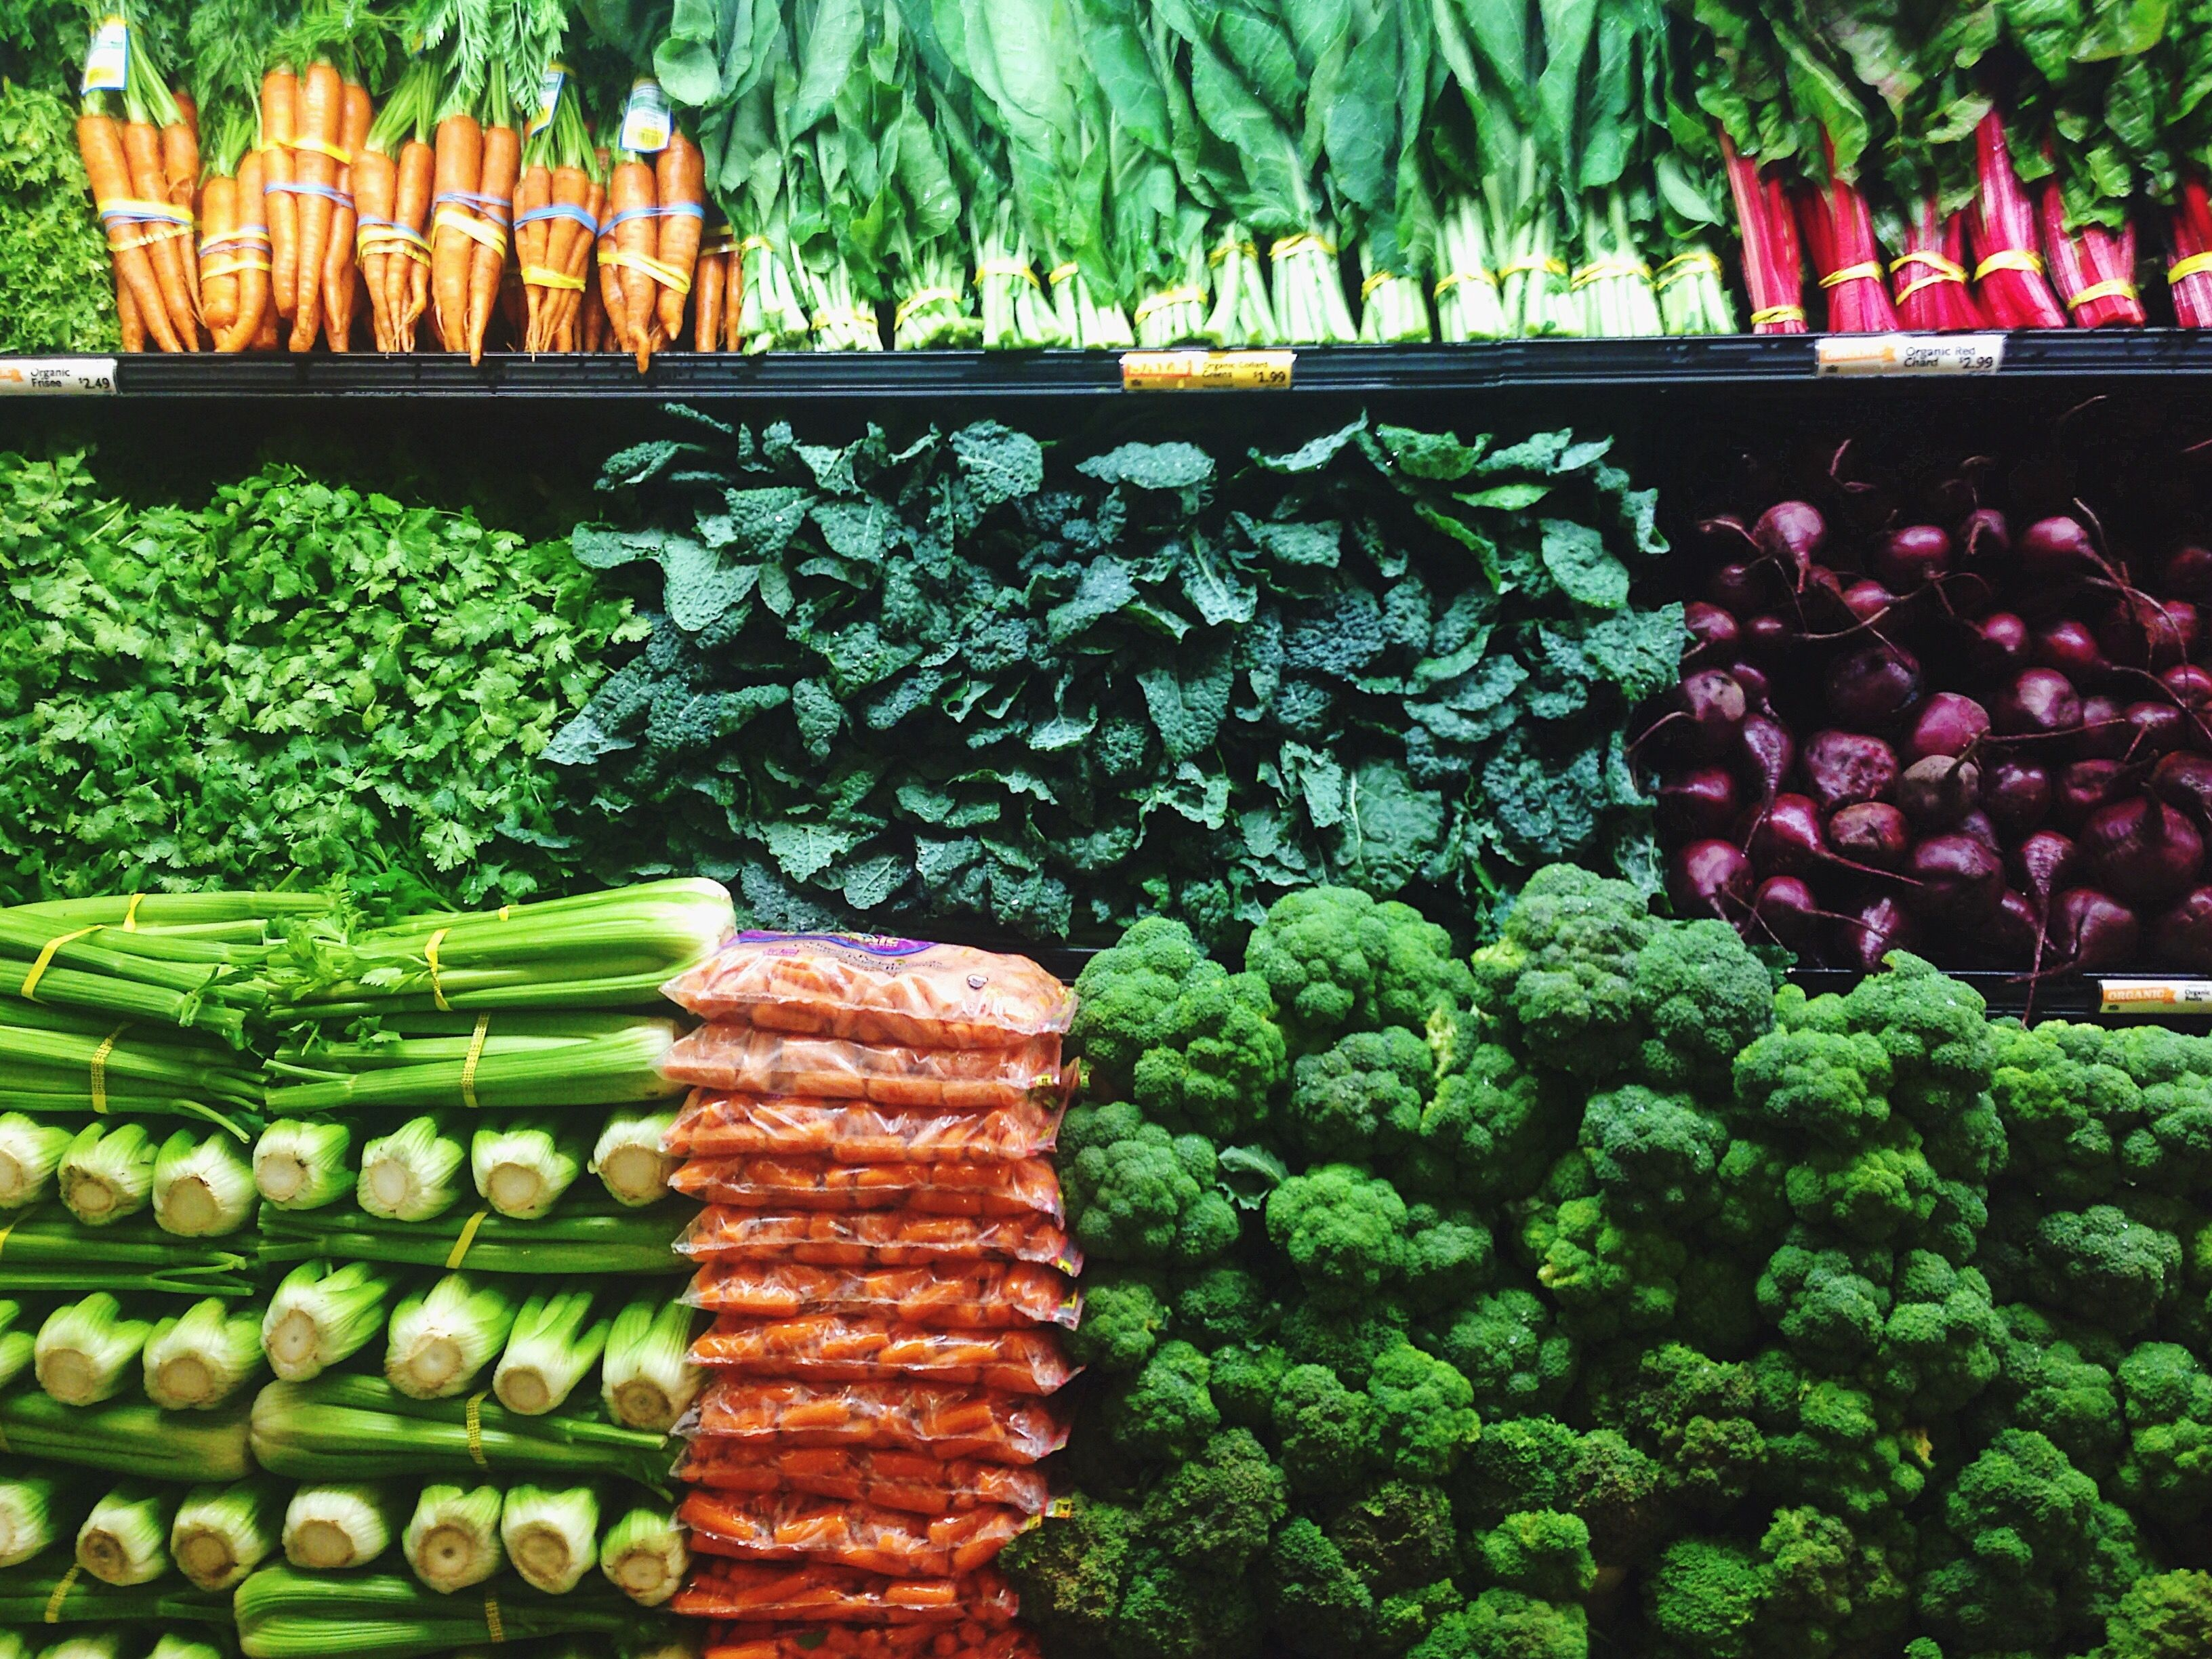 Look for alternative food stores that put an emphasis on reducing waste.